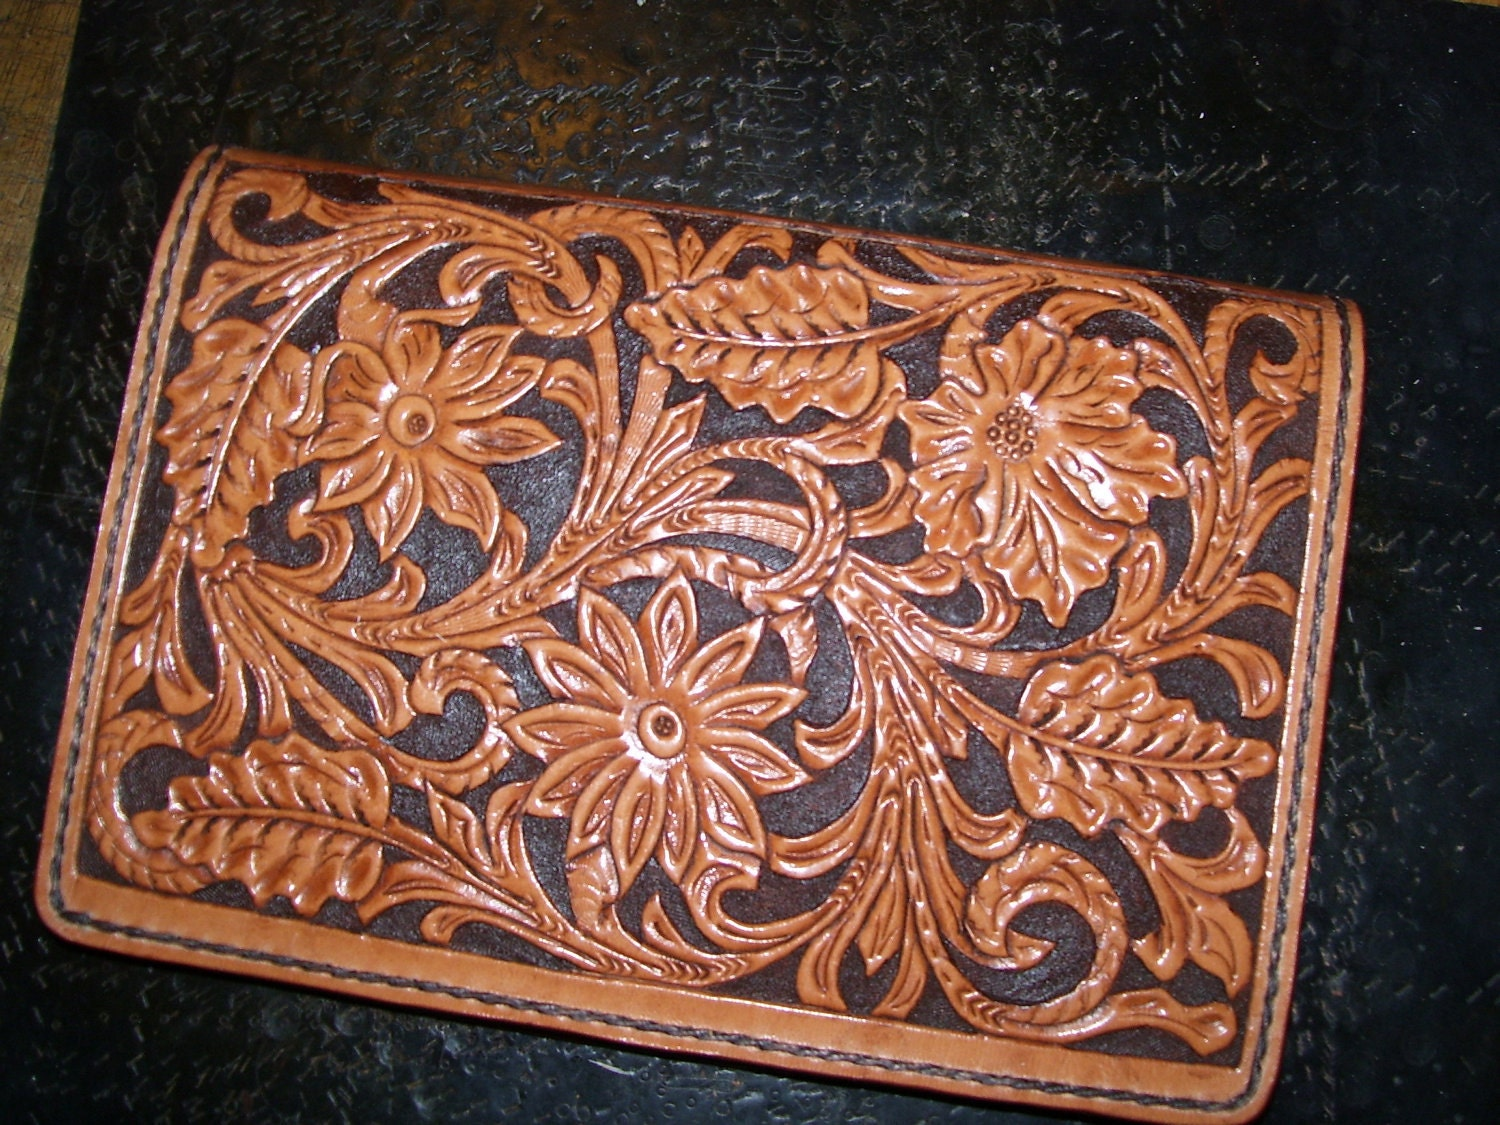 6 X 8 5 Hand Tooled Leather Day Planner Journal